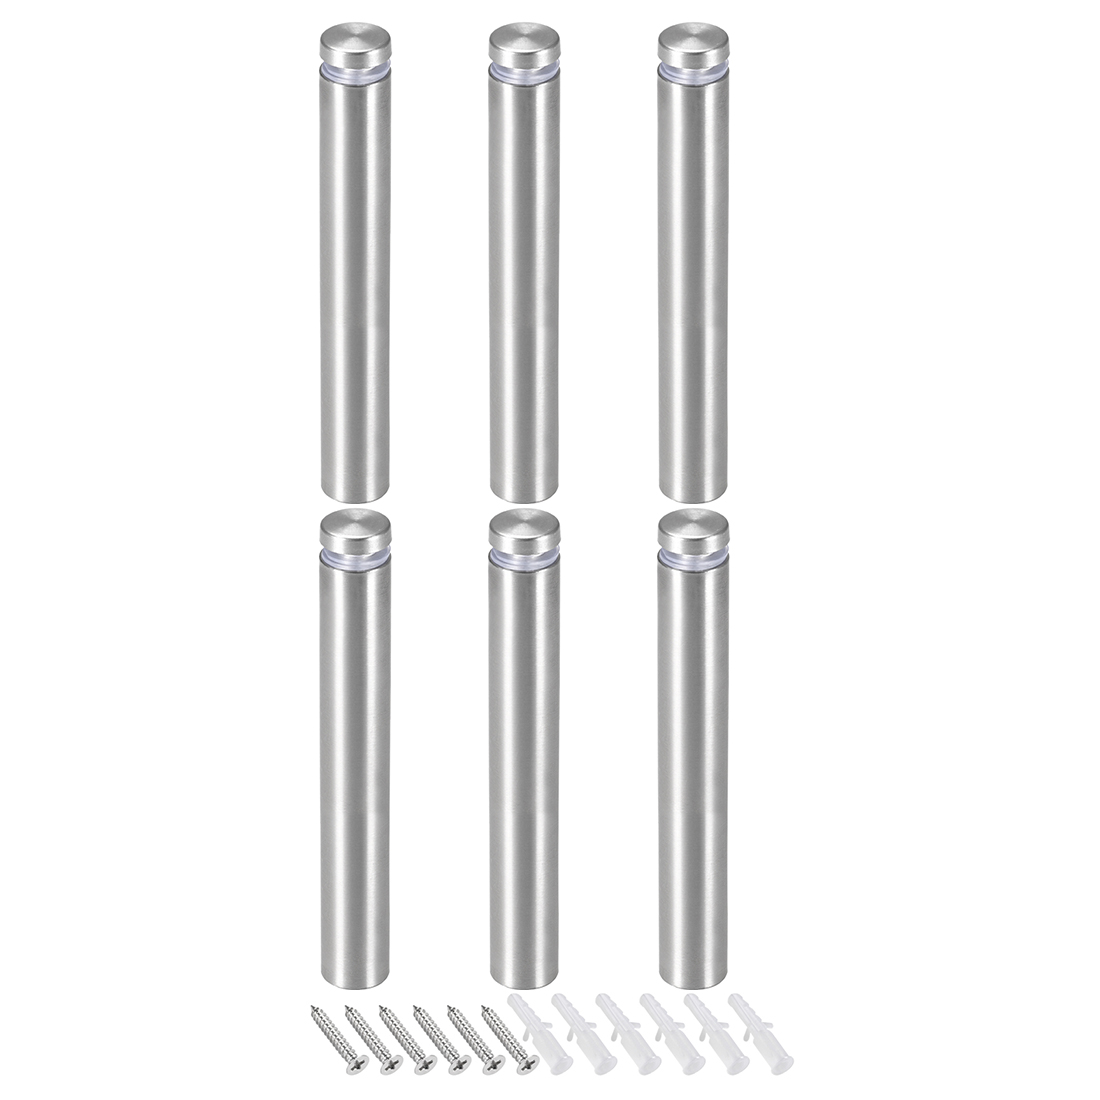 Glass Standoff Mount Stainless Steel Wall Standoff 19mm Dia 122mm Length 6 Pcs